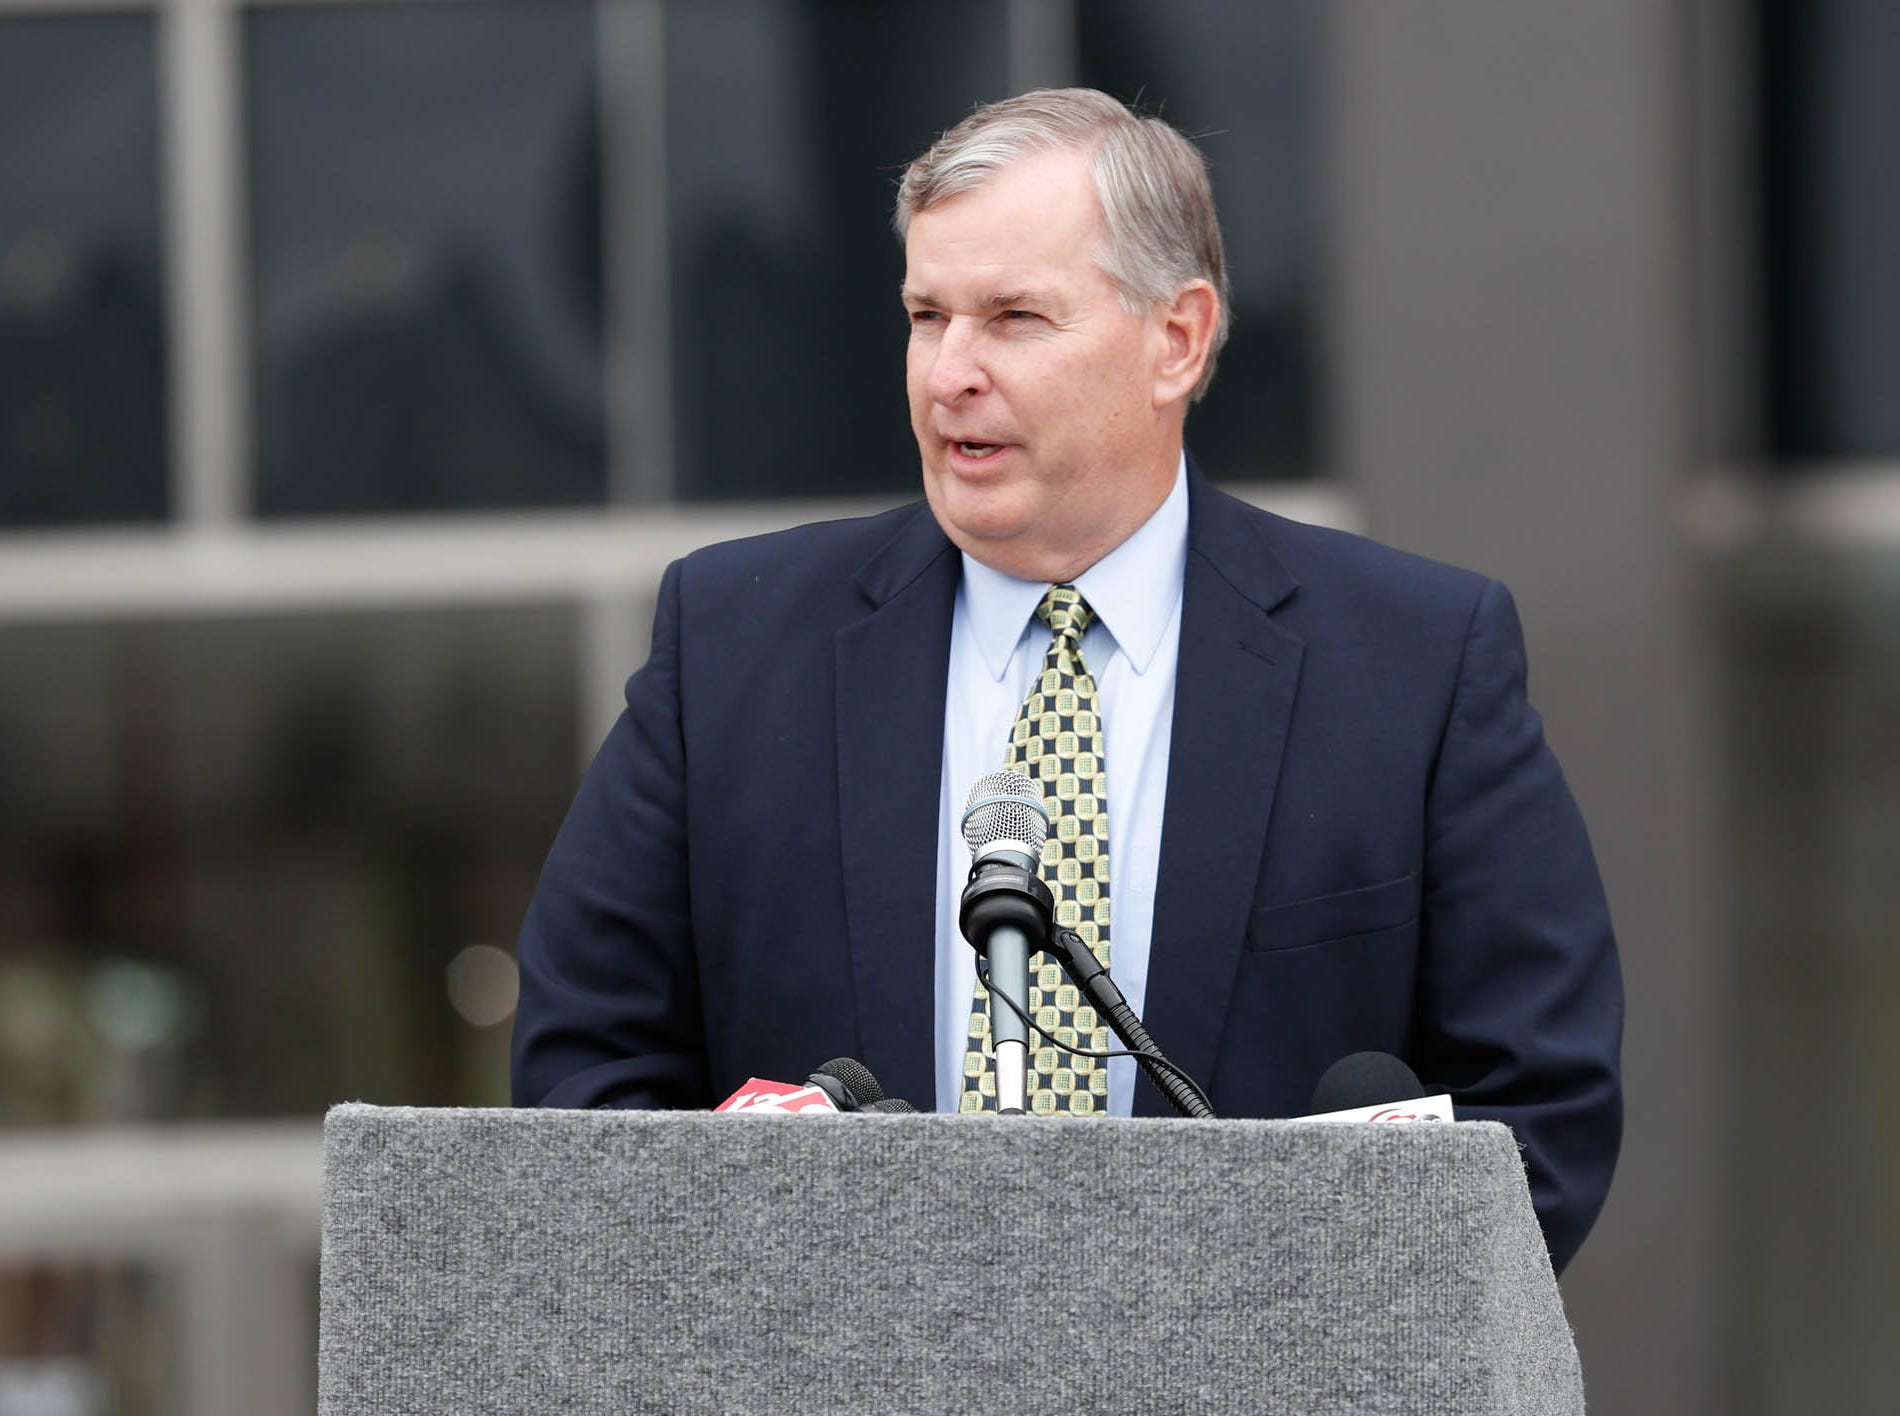 Former Indianapolis Mayor Greg Ballard gives remarks during the reopening and dedication of Richard G. Lugar Plaza at the City-County Building in Indianapolis on Thursday, Oct. 11, 2018.